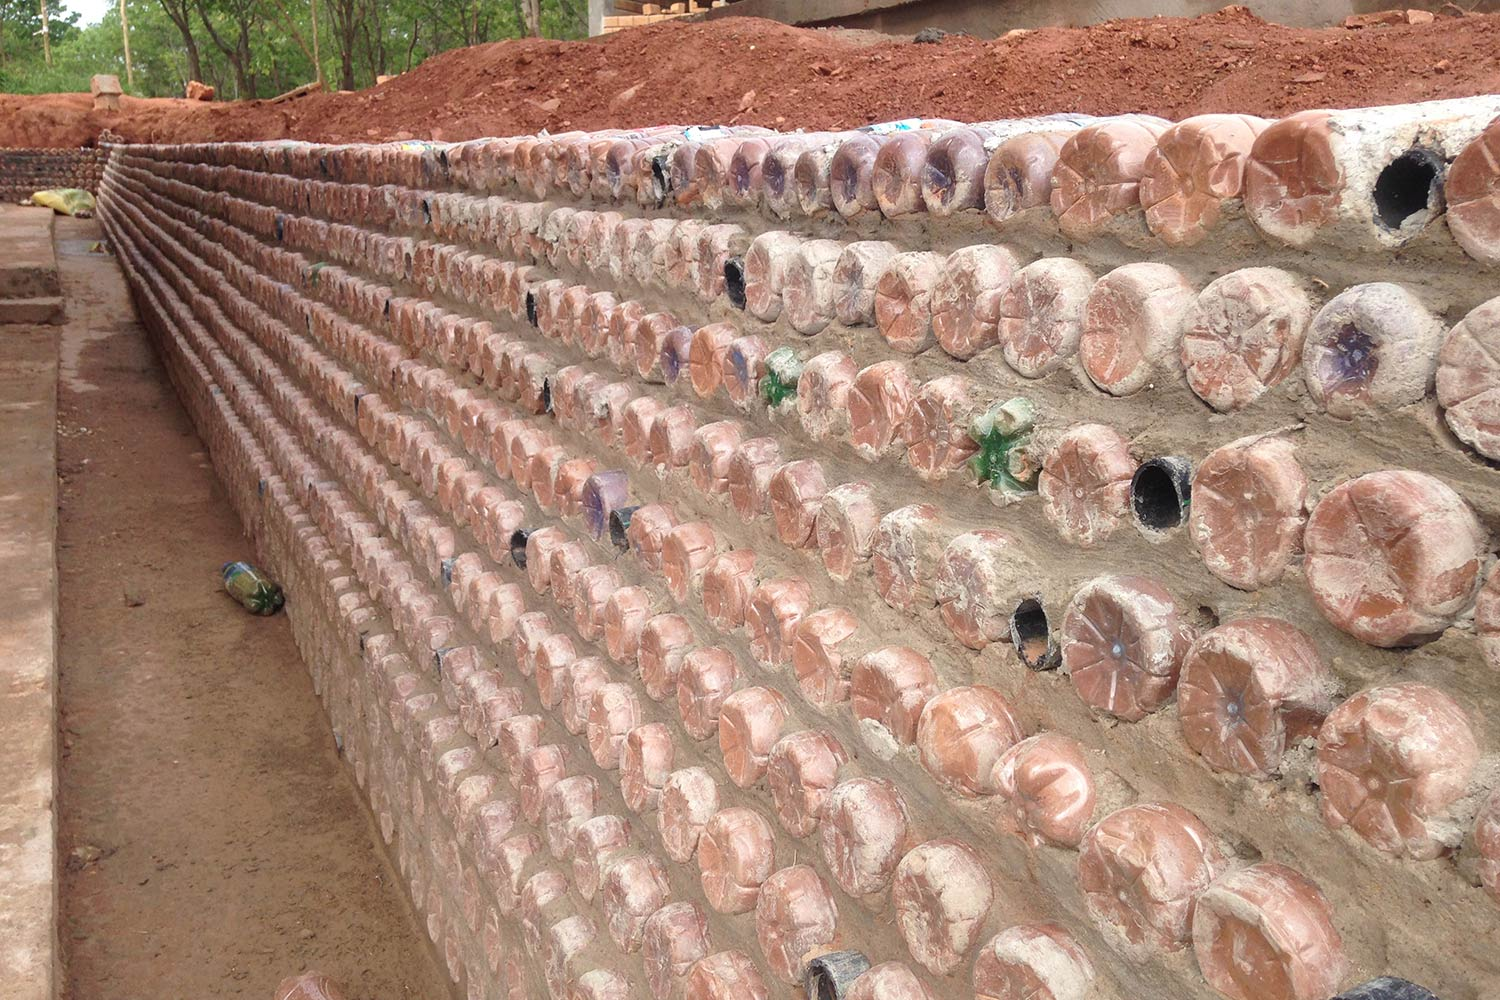 An innovative wall made from recycled plastic bottles